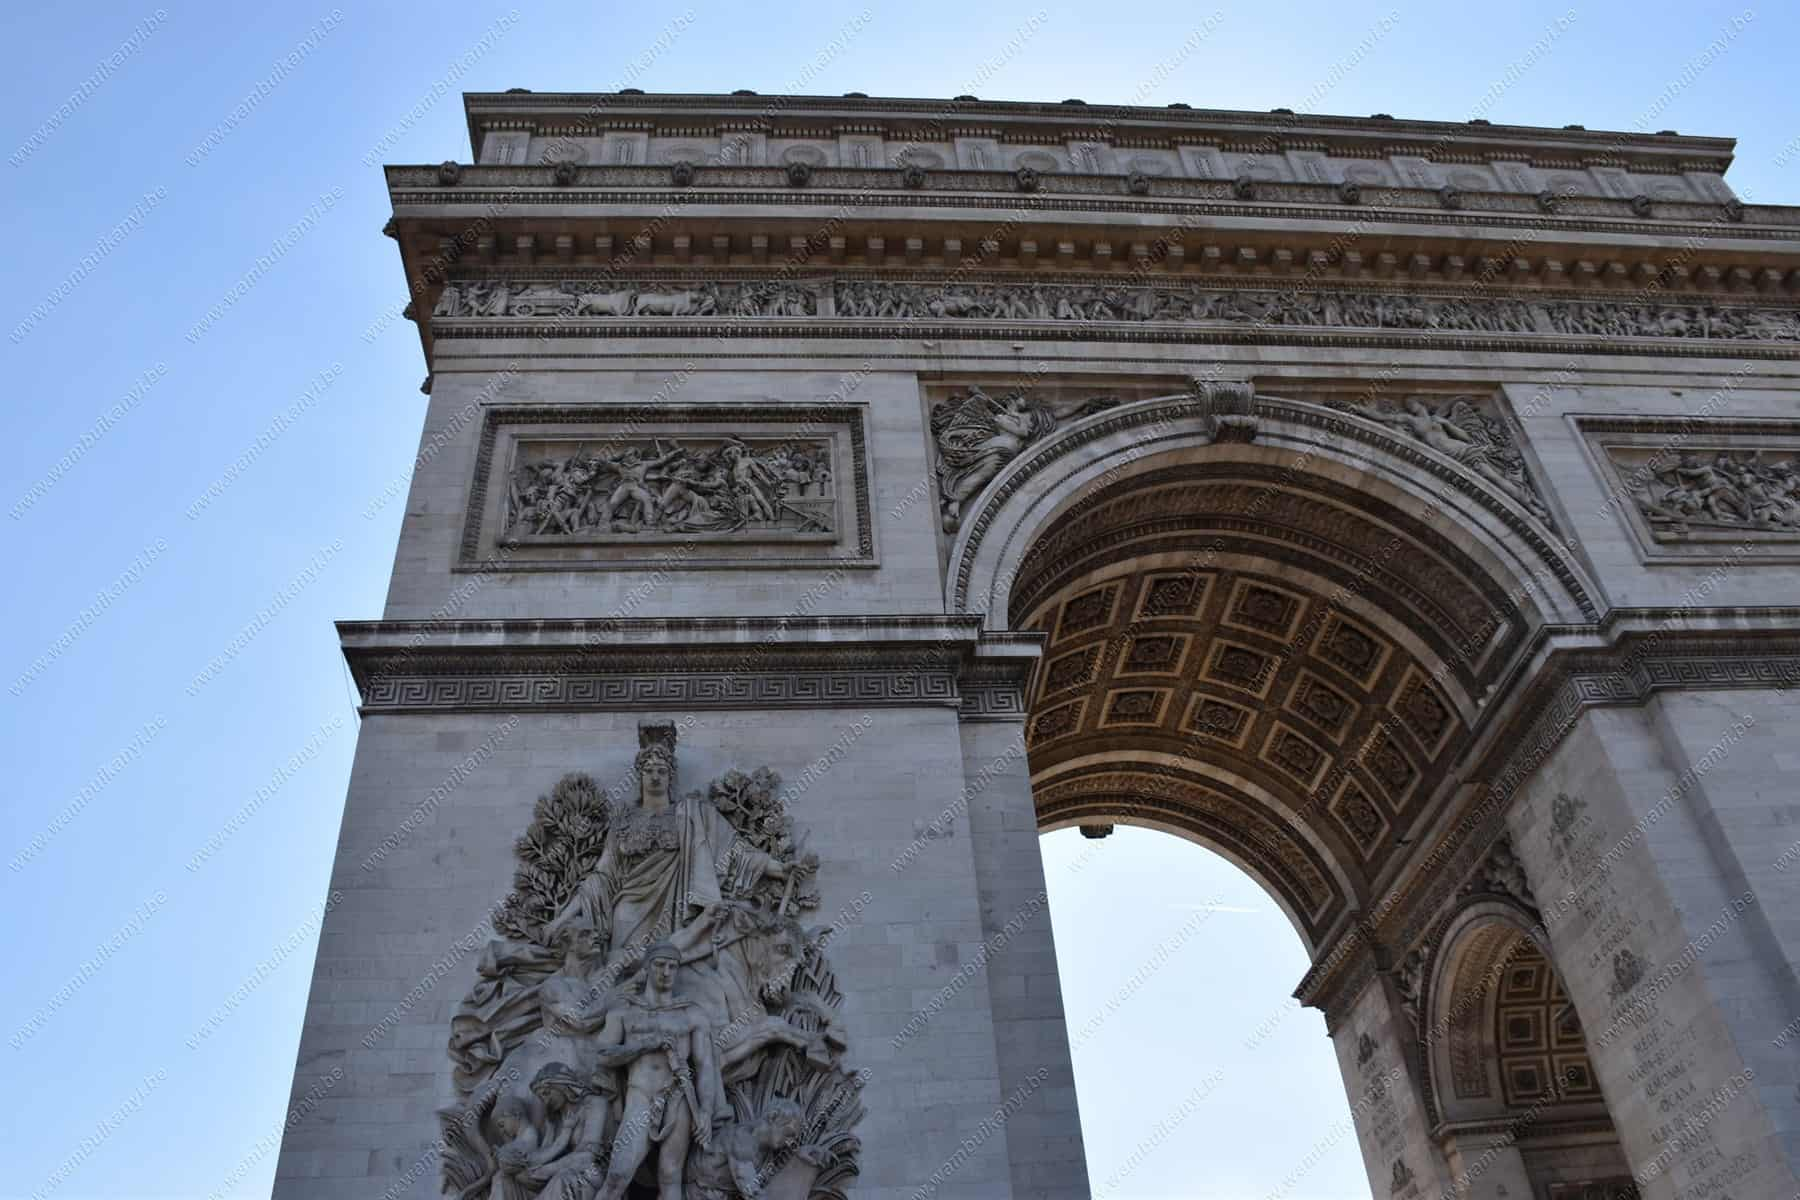 The Arc de Triomphe Monument in Paris